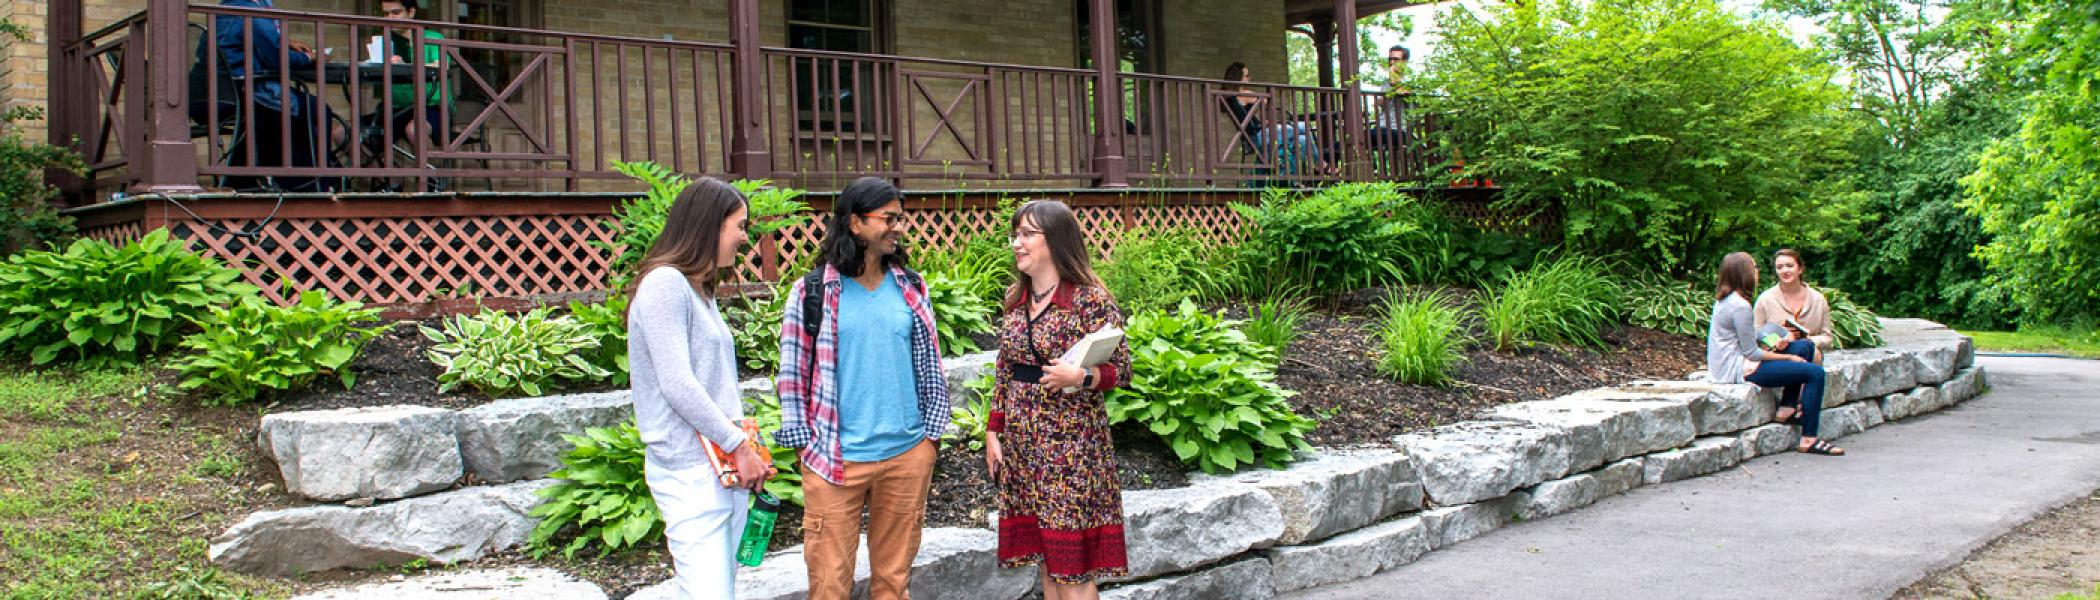 Students conversing outside at Traill College.